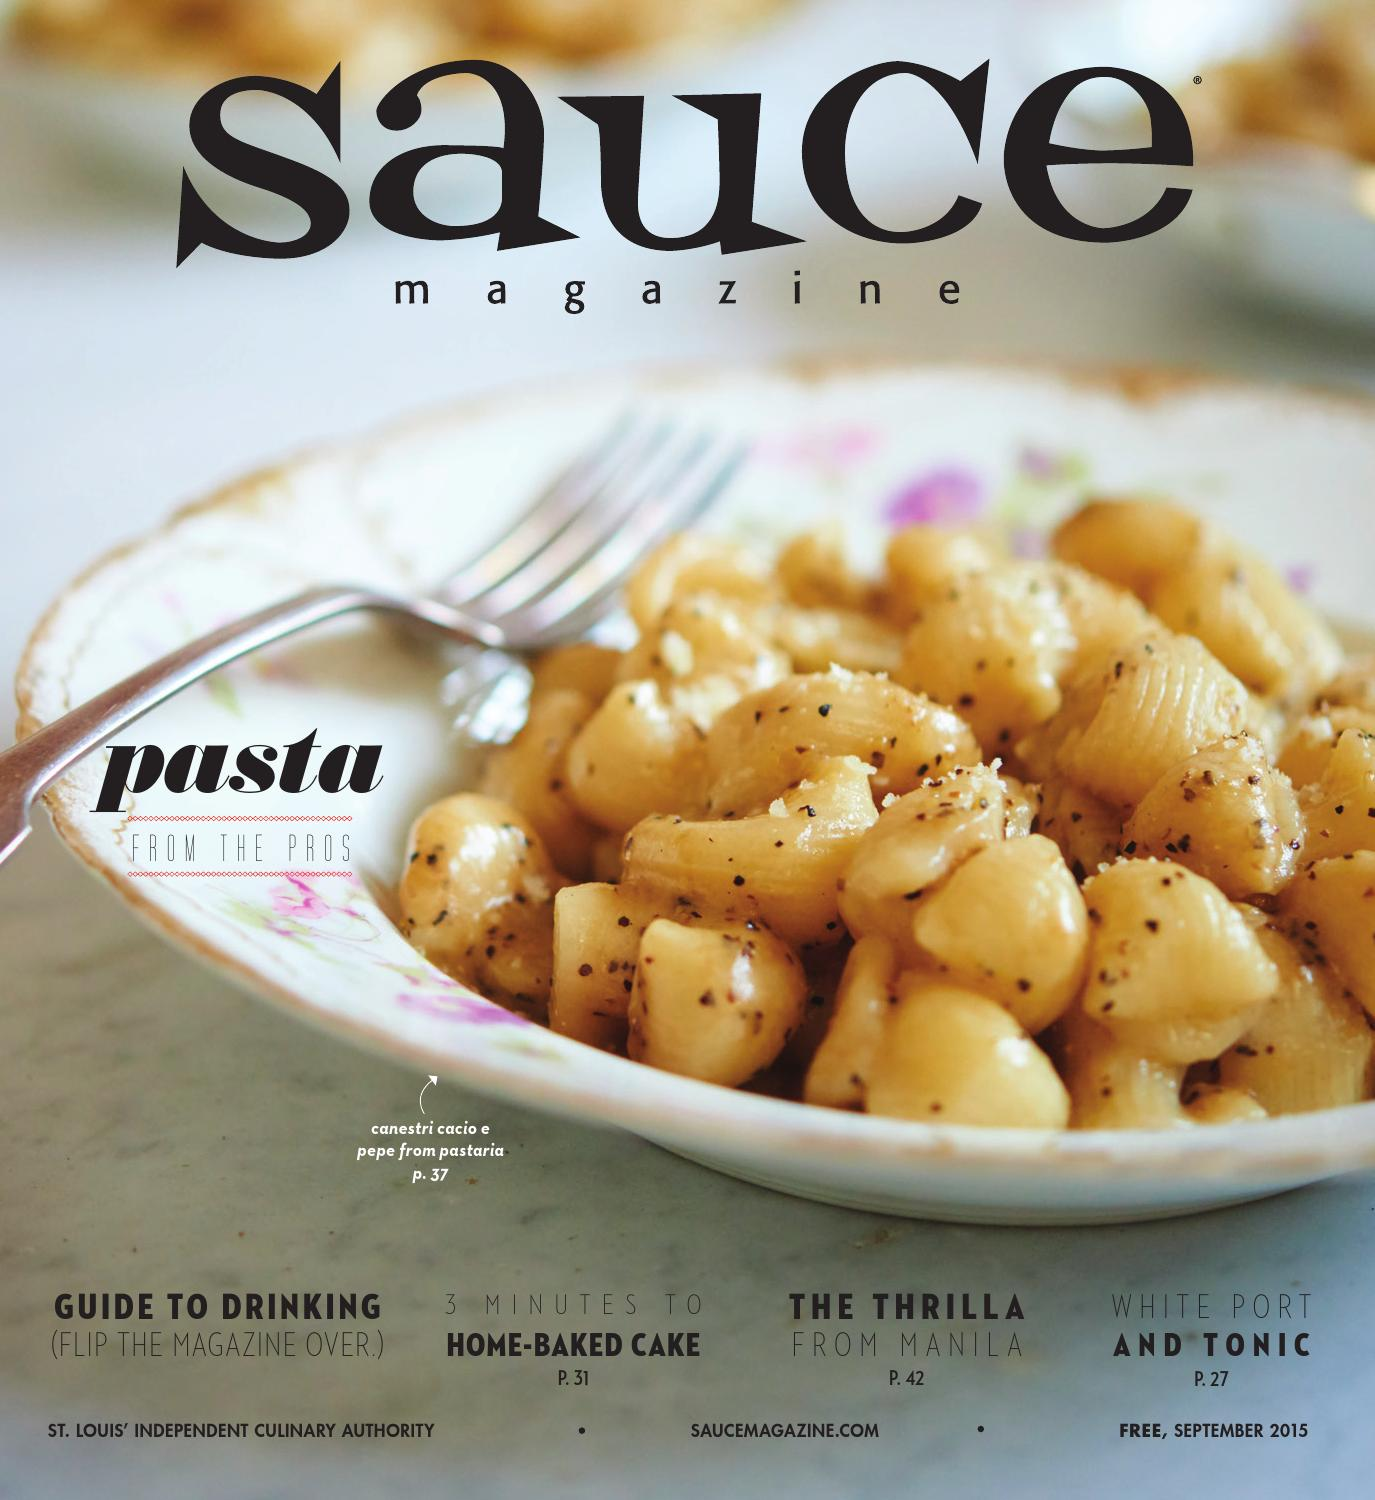 Mantle sauce: how to cook properly